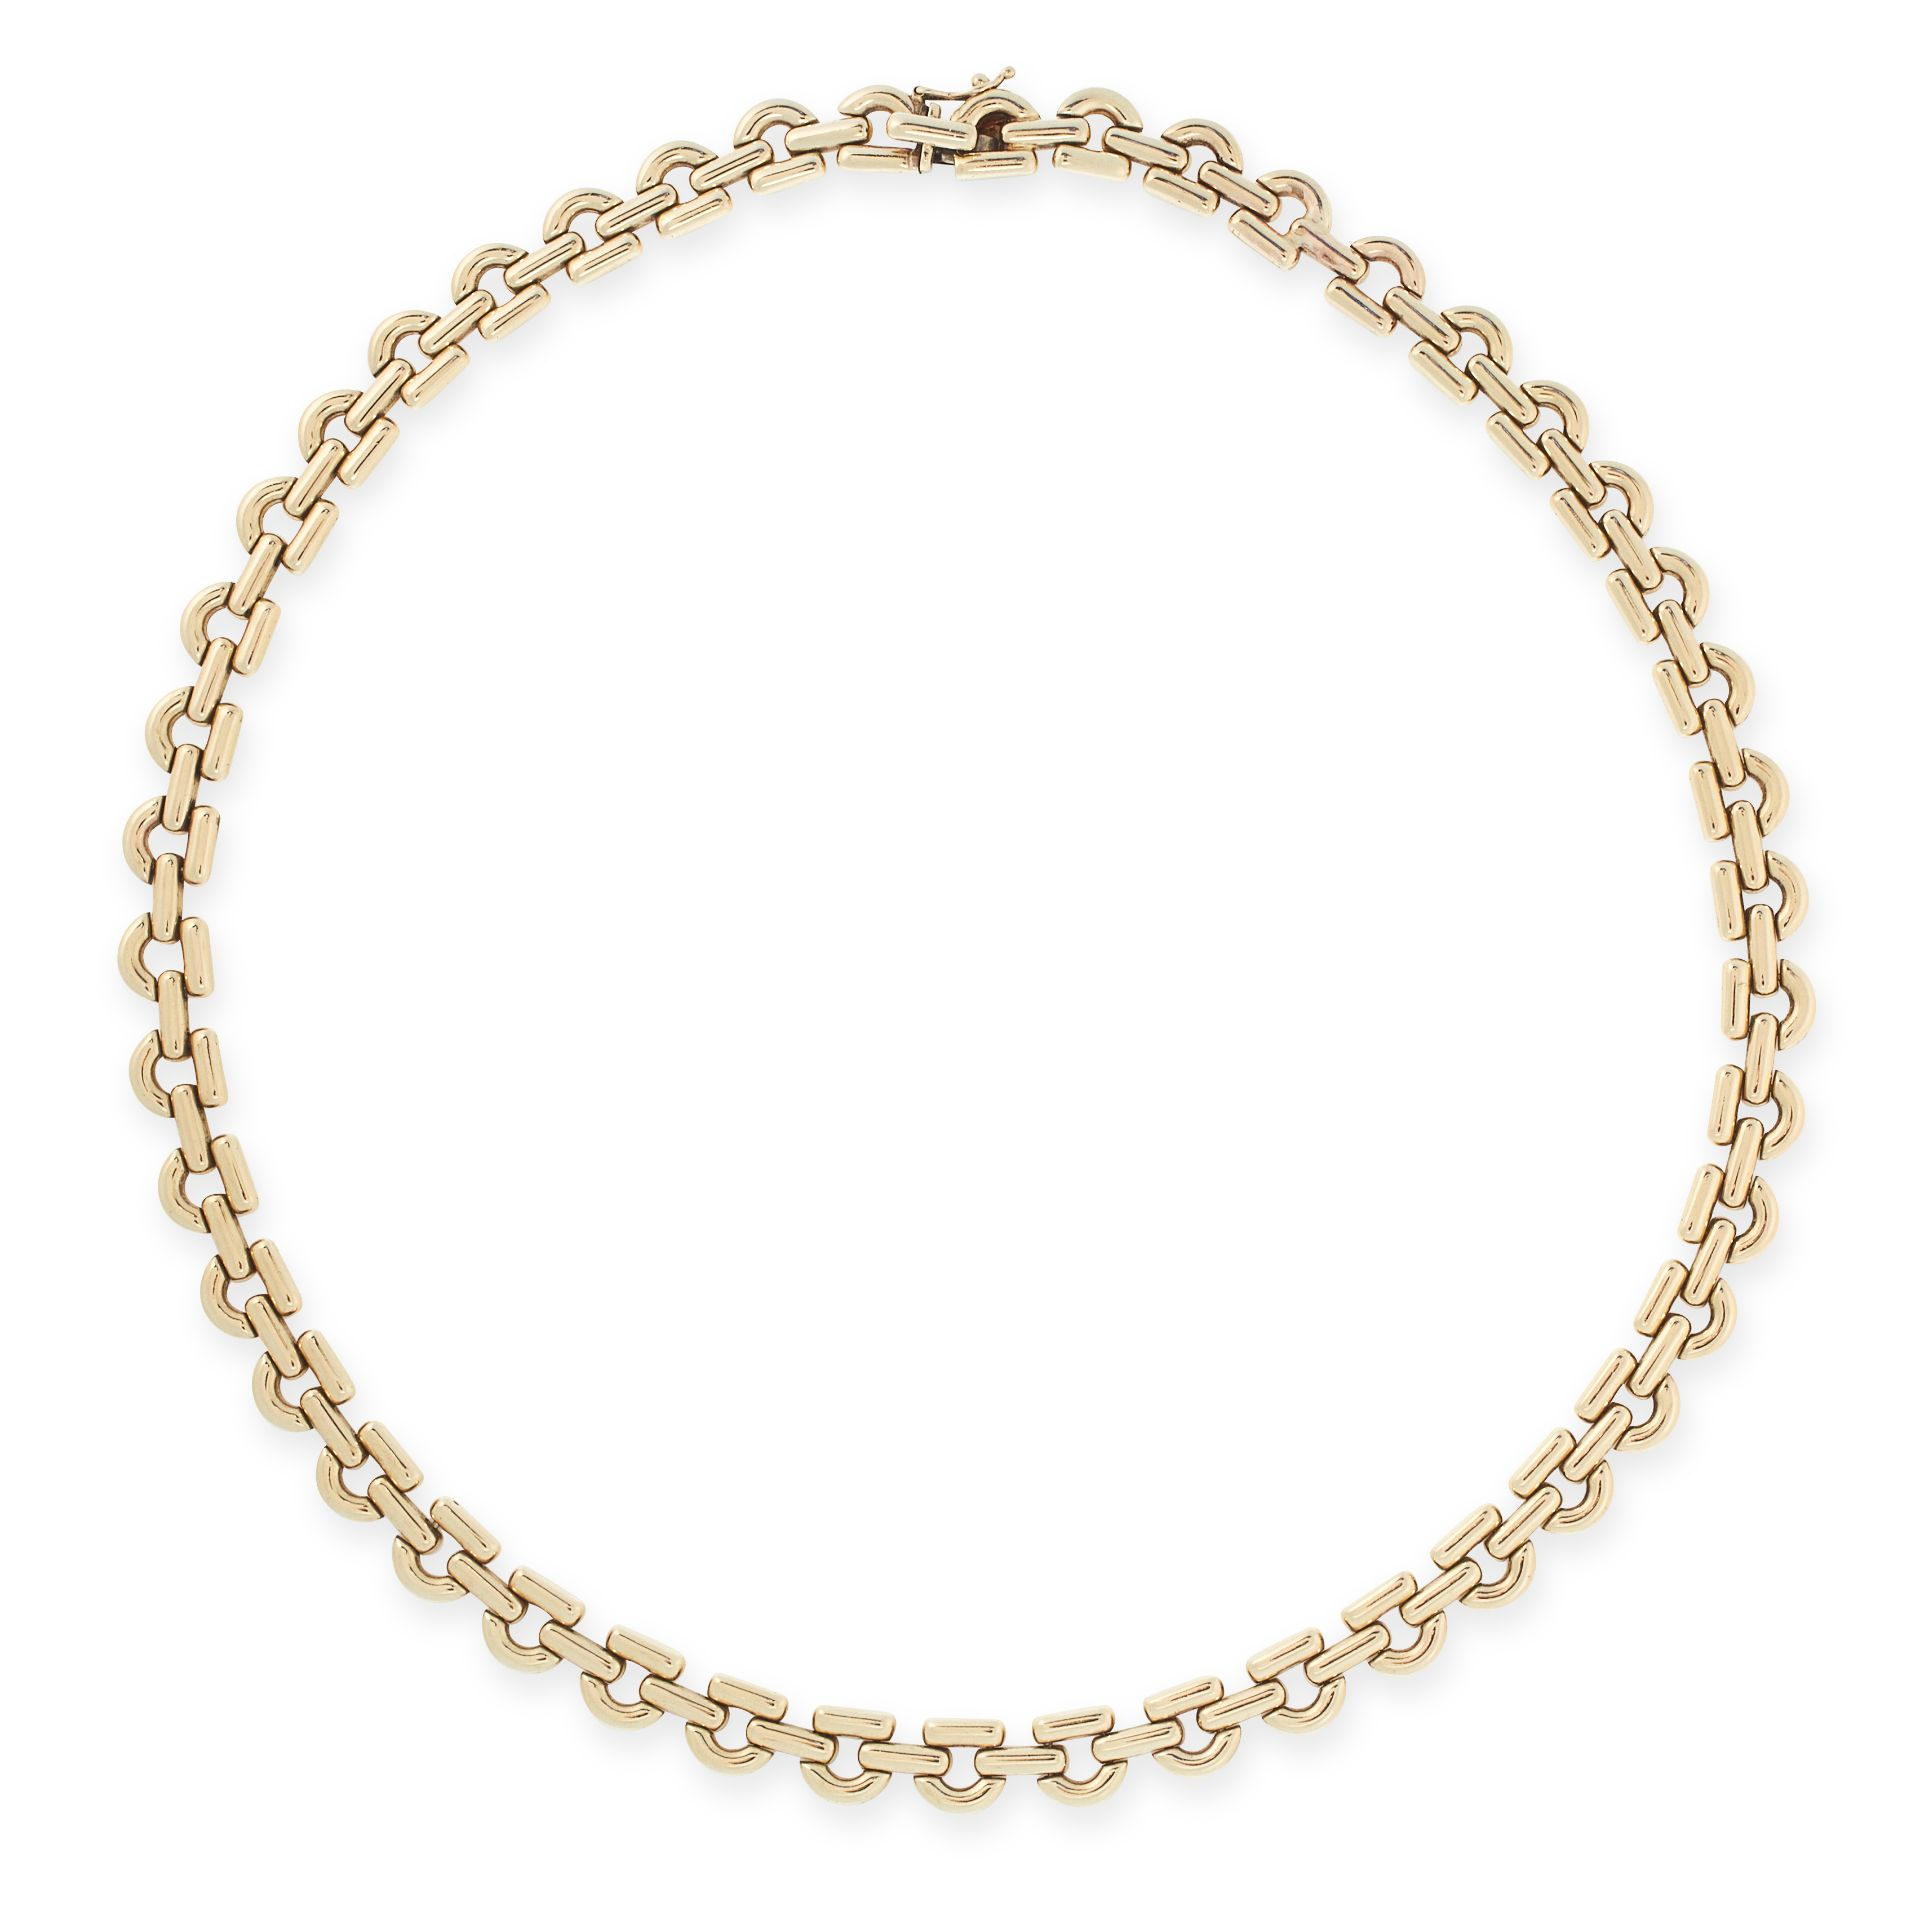 A GOLD COLLAR NECKLACE, CHIAMPESAN in 9ct yellow gold, formed of fancy D shaped links, stamped